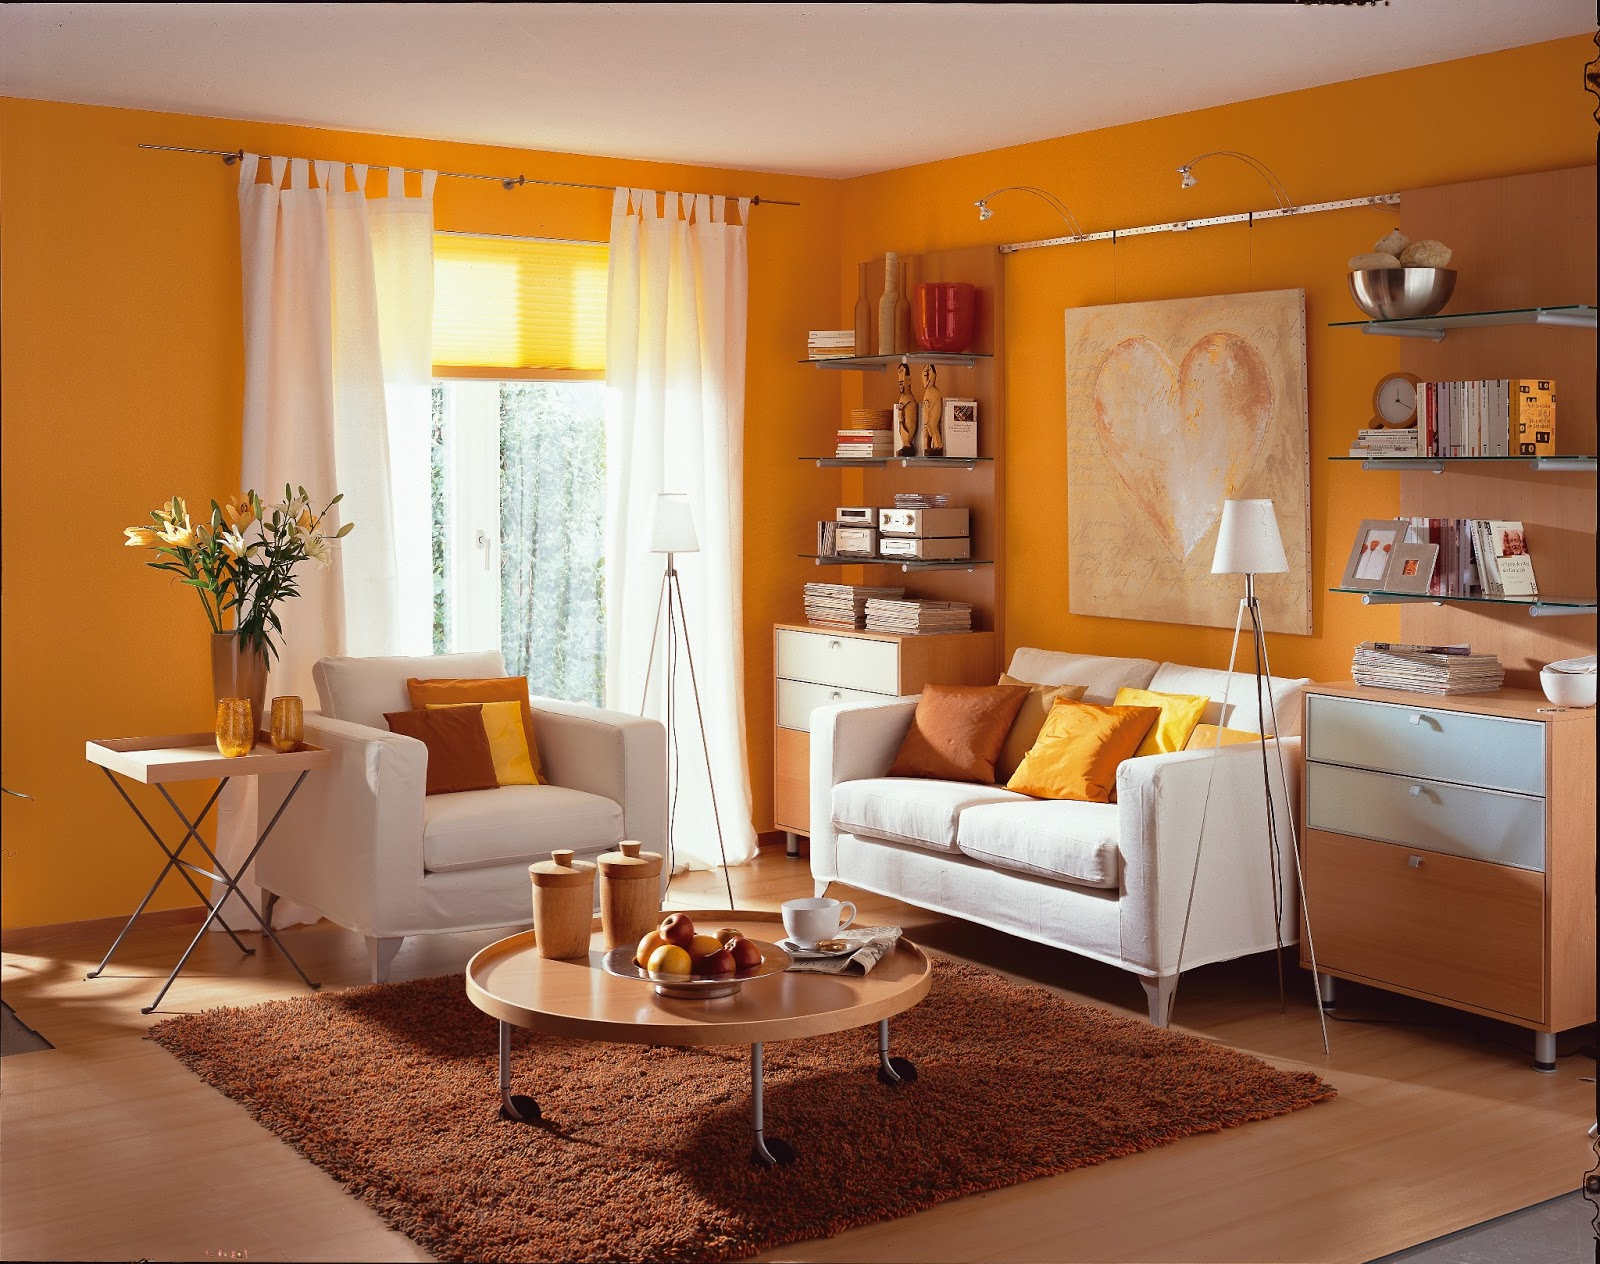 Salas color naranja ideas para decorar dise ar y for Ideas decorativas home salas